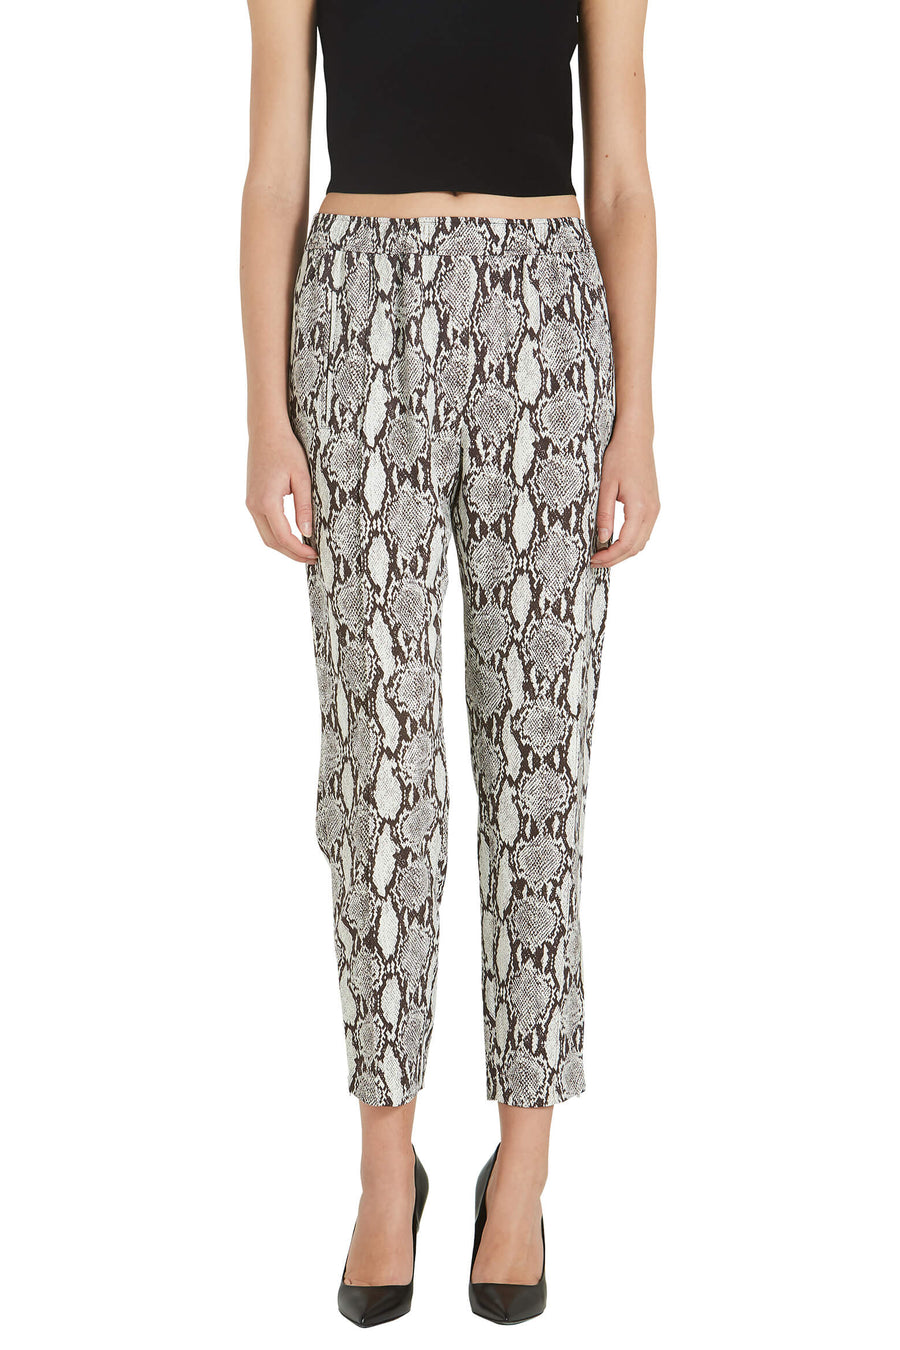 A.L.C. Elijah Snake Print Pant from The New Trend